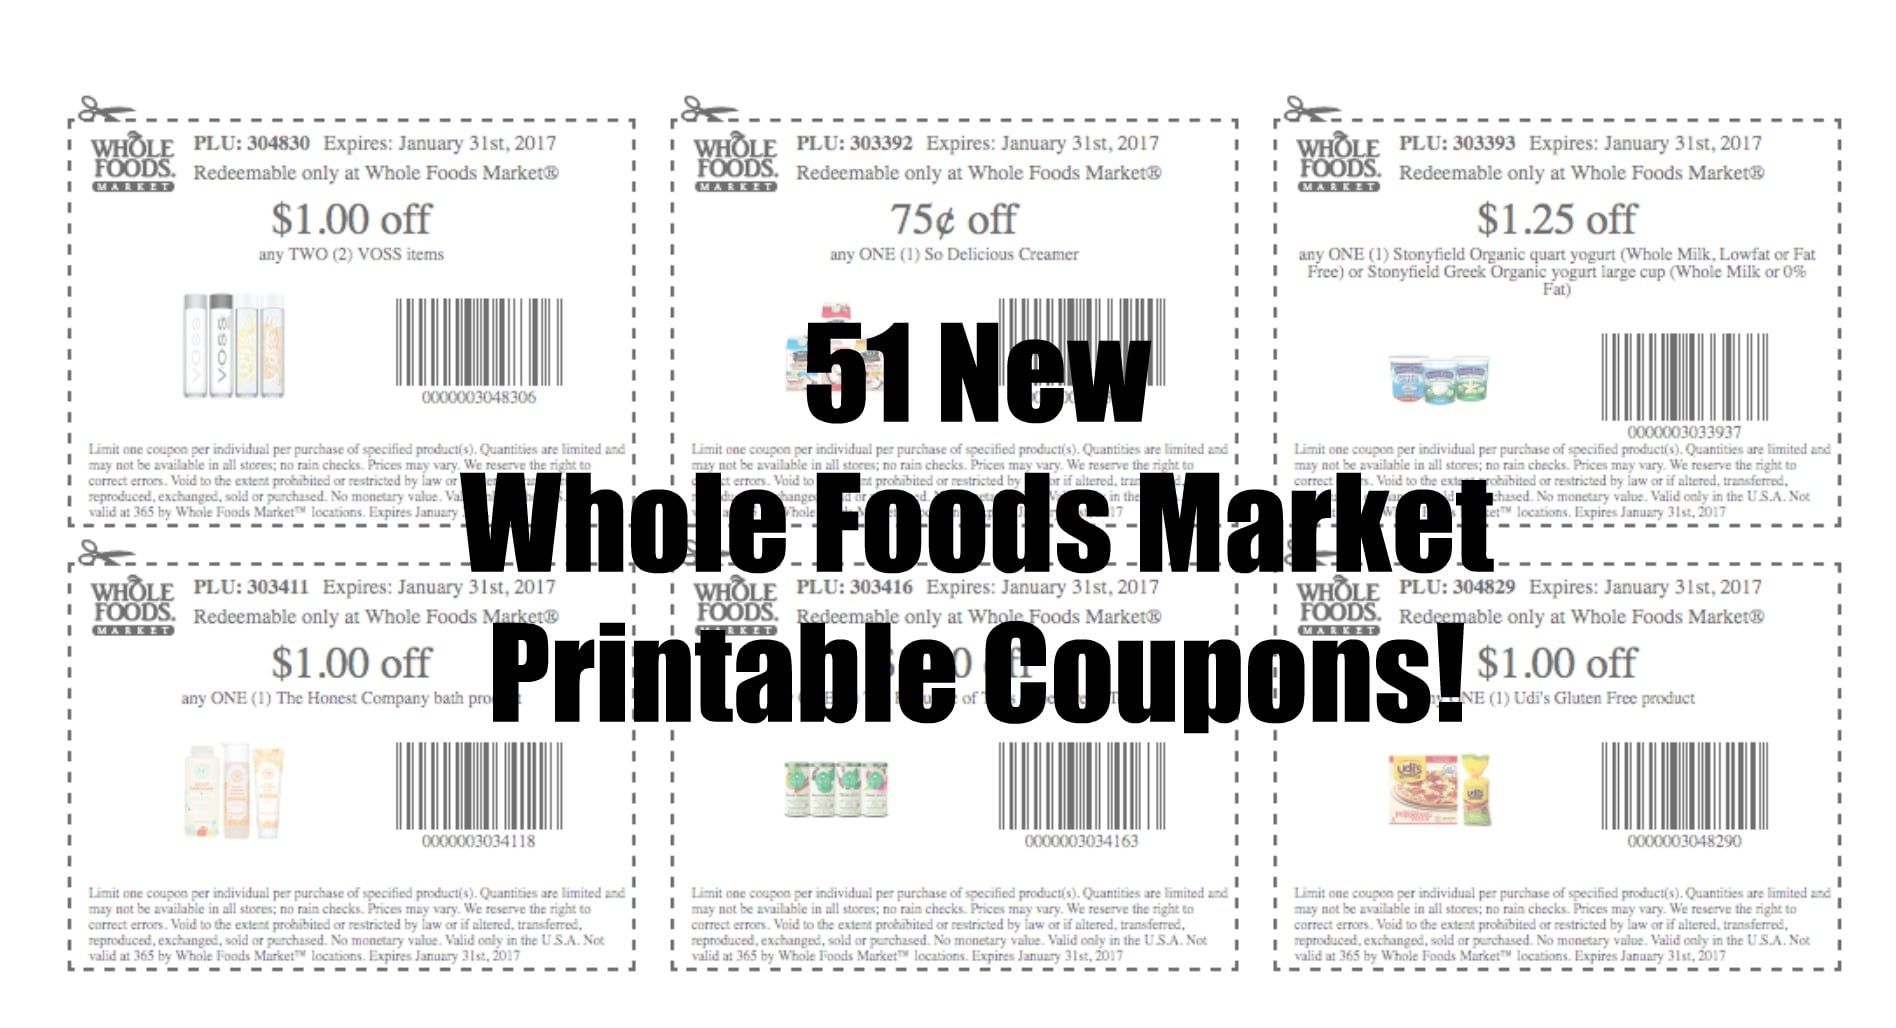 photograph regarding Whole Foods Printable Coupons named 51 Clean Printable Comprehensive Meals Market place Discount coupons- November